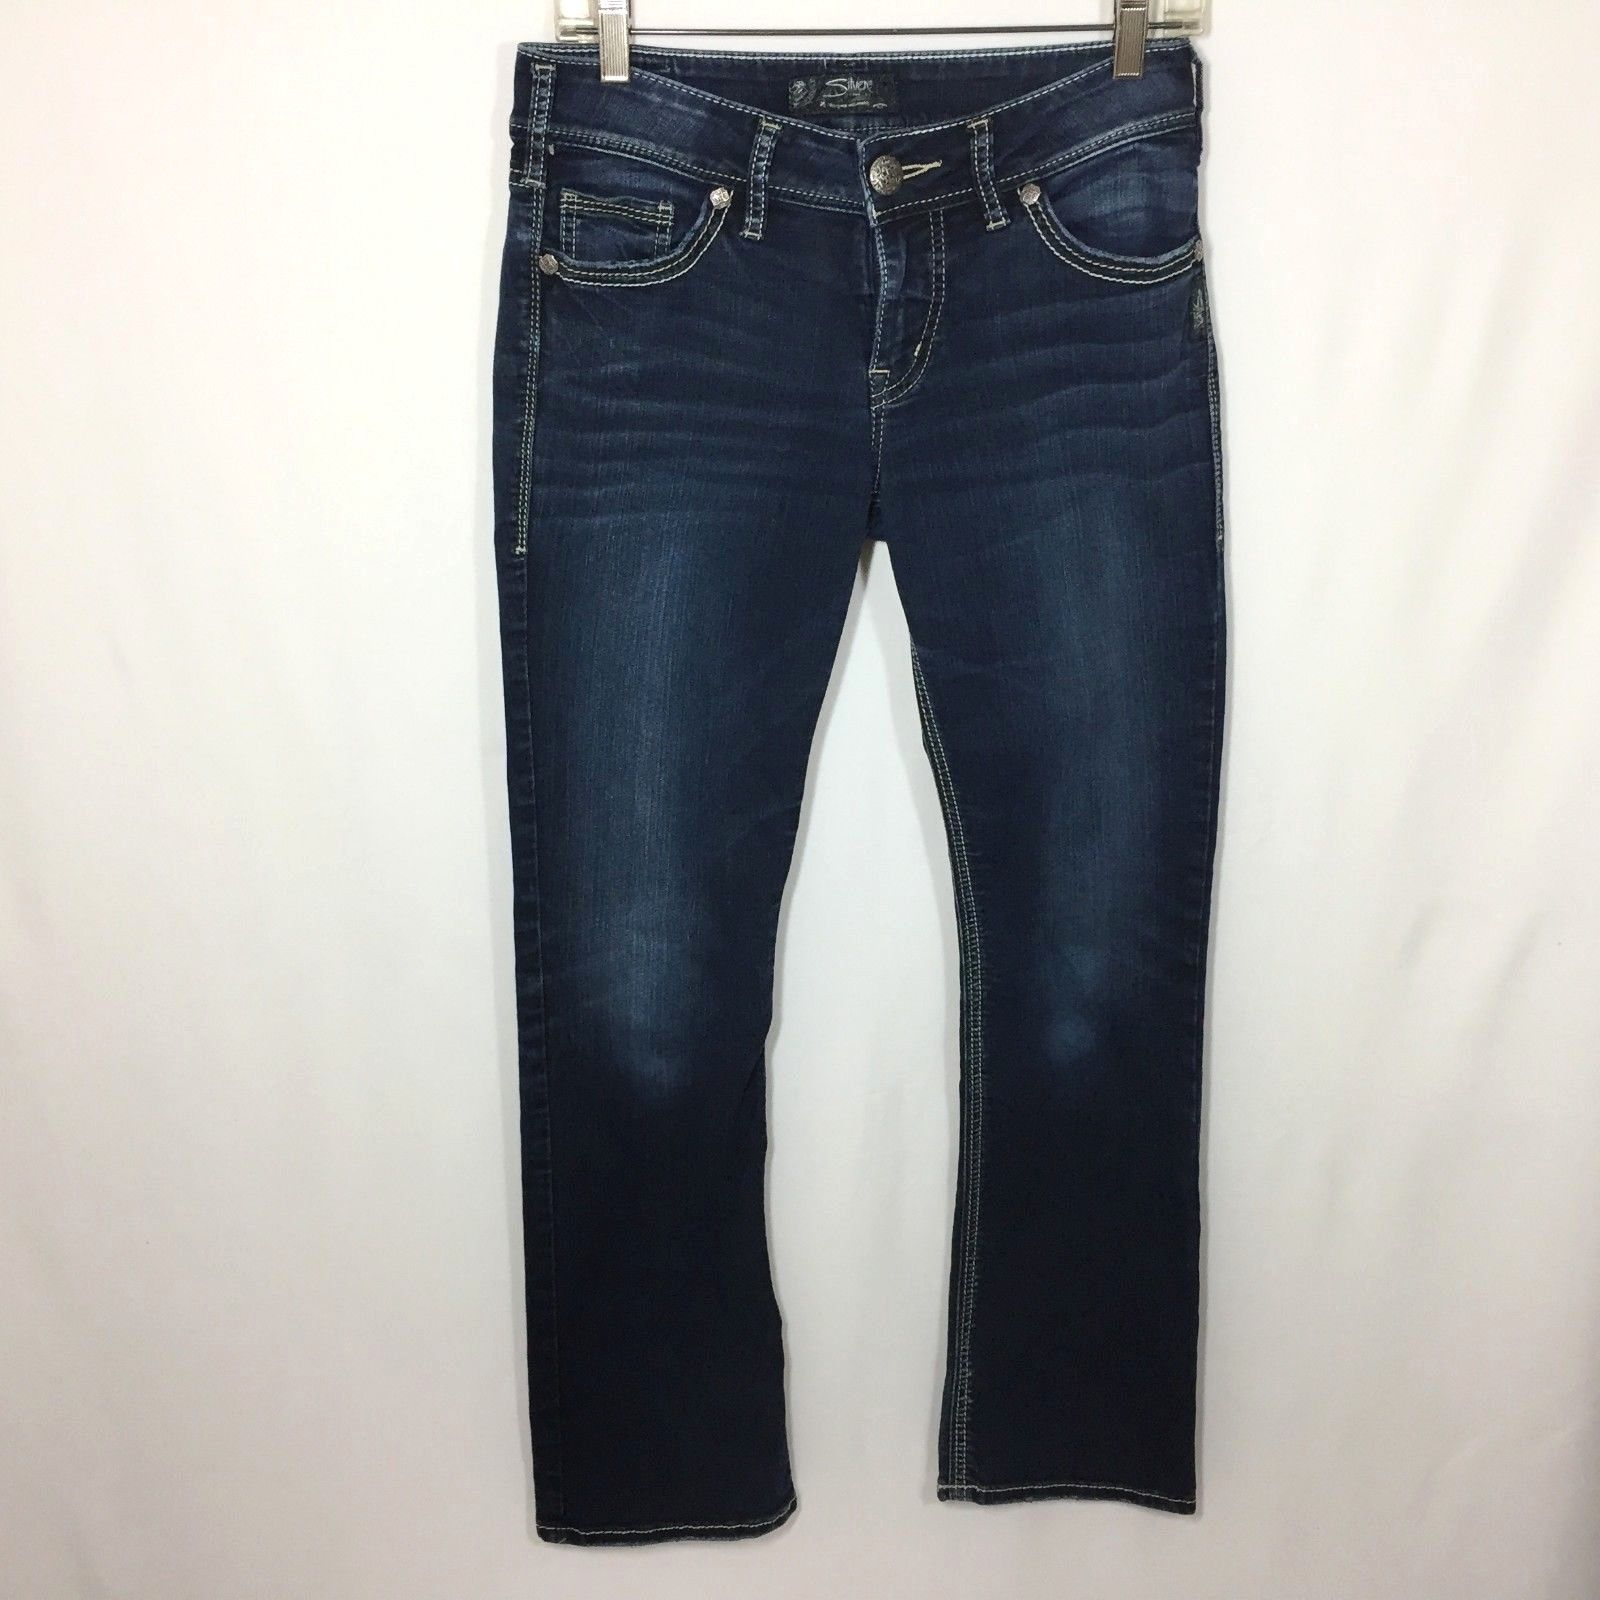 Eileen Fisher NEW White Womens Size 16P Petite Skinny Stretch Jeans $178-598